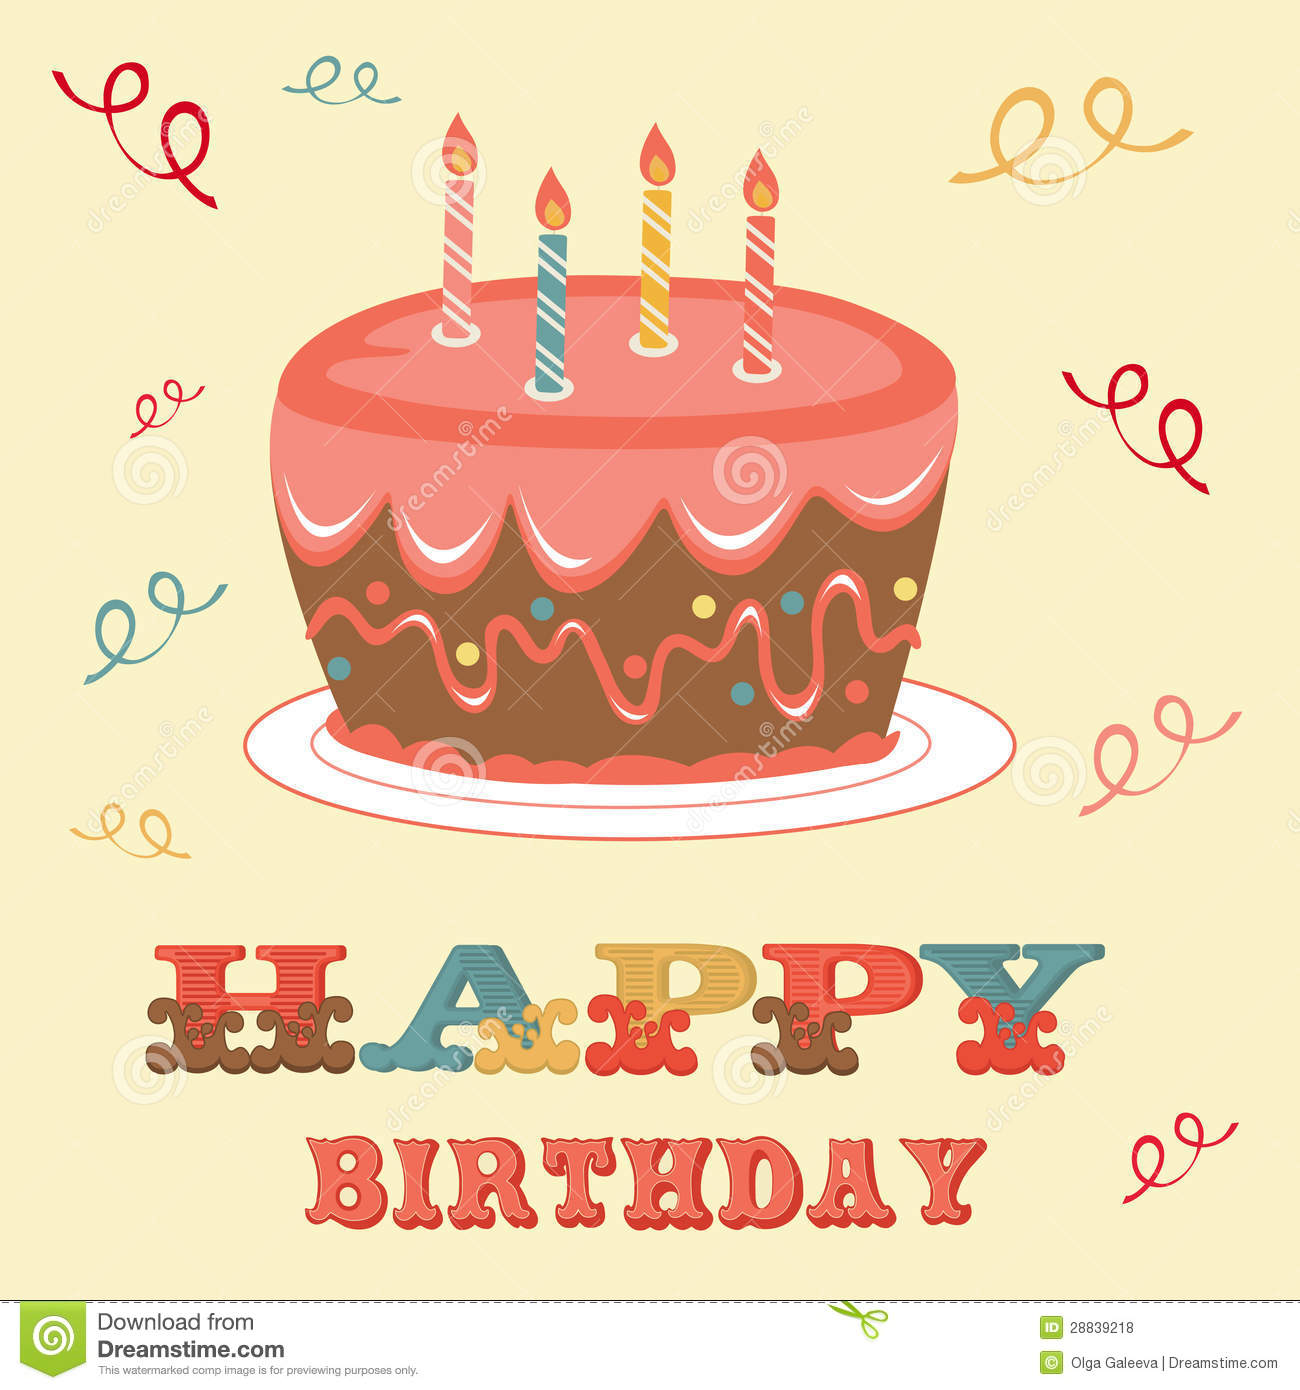 Royalty Free Birthday Images ~ Birthday card with cake royalty free stock photos image